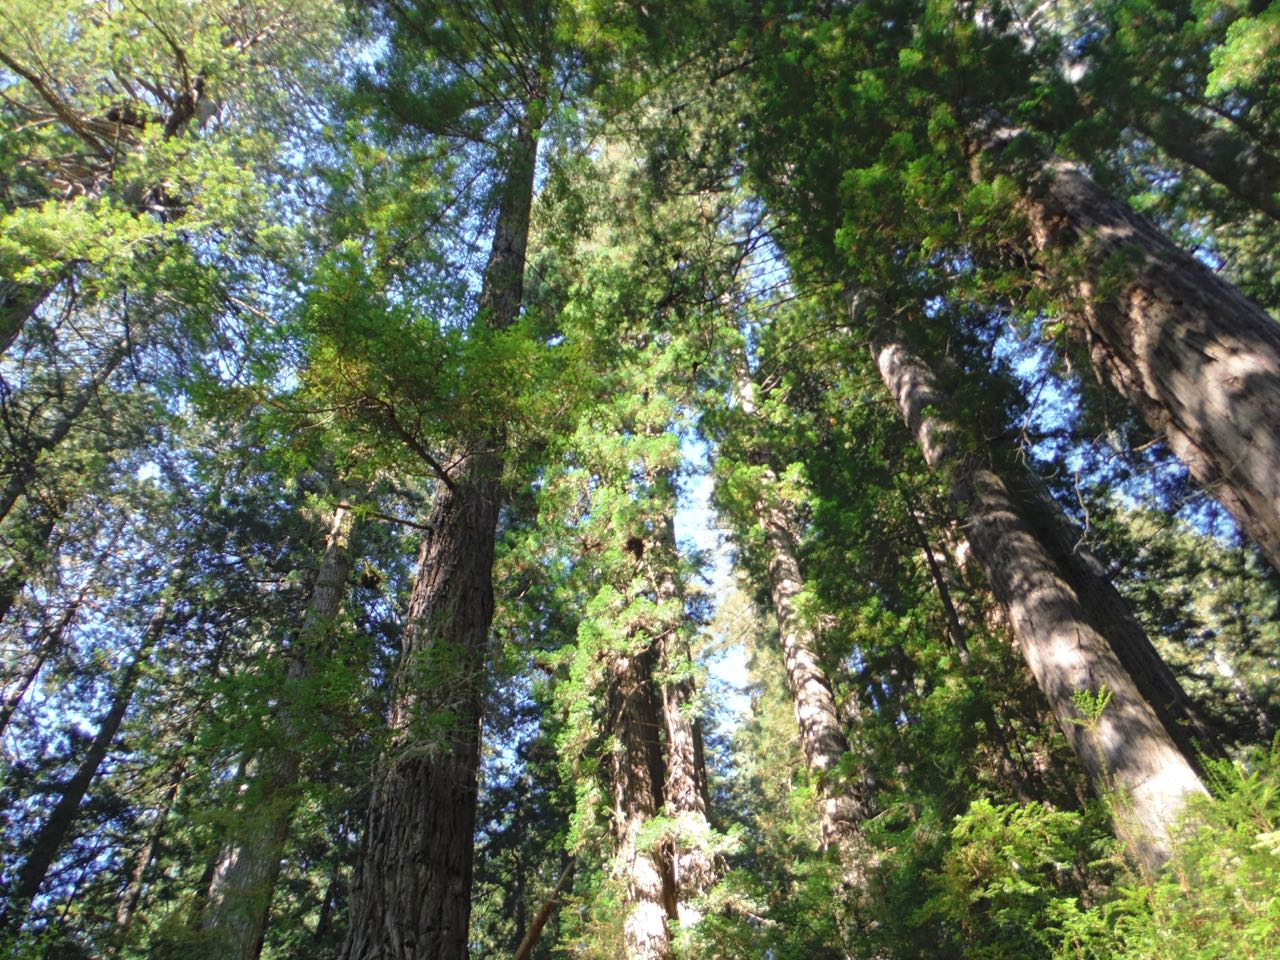 Redwoods 2017 10 08 213 Of 287